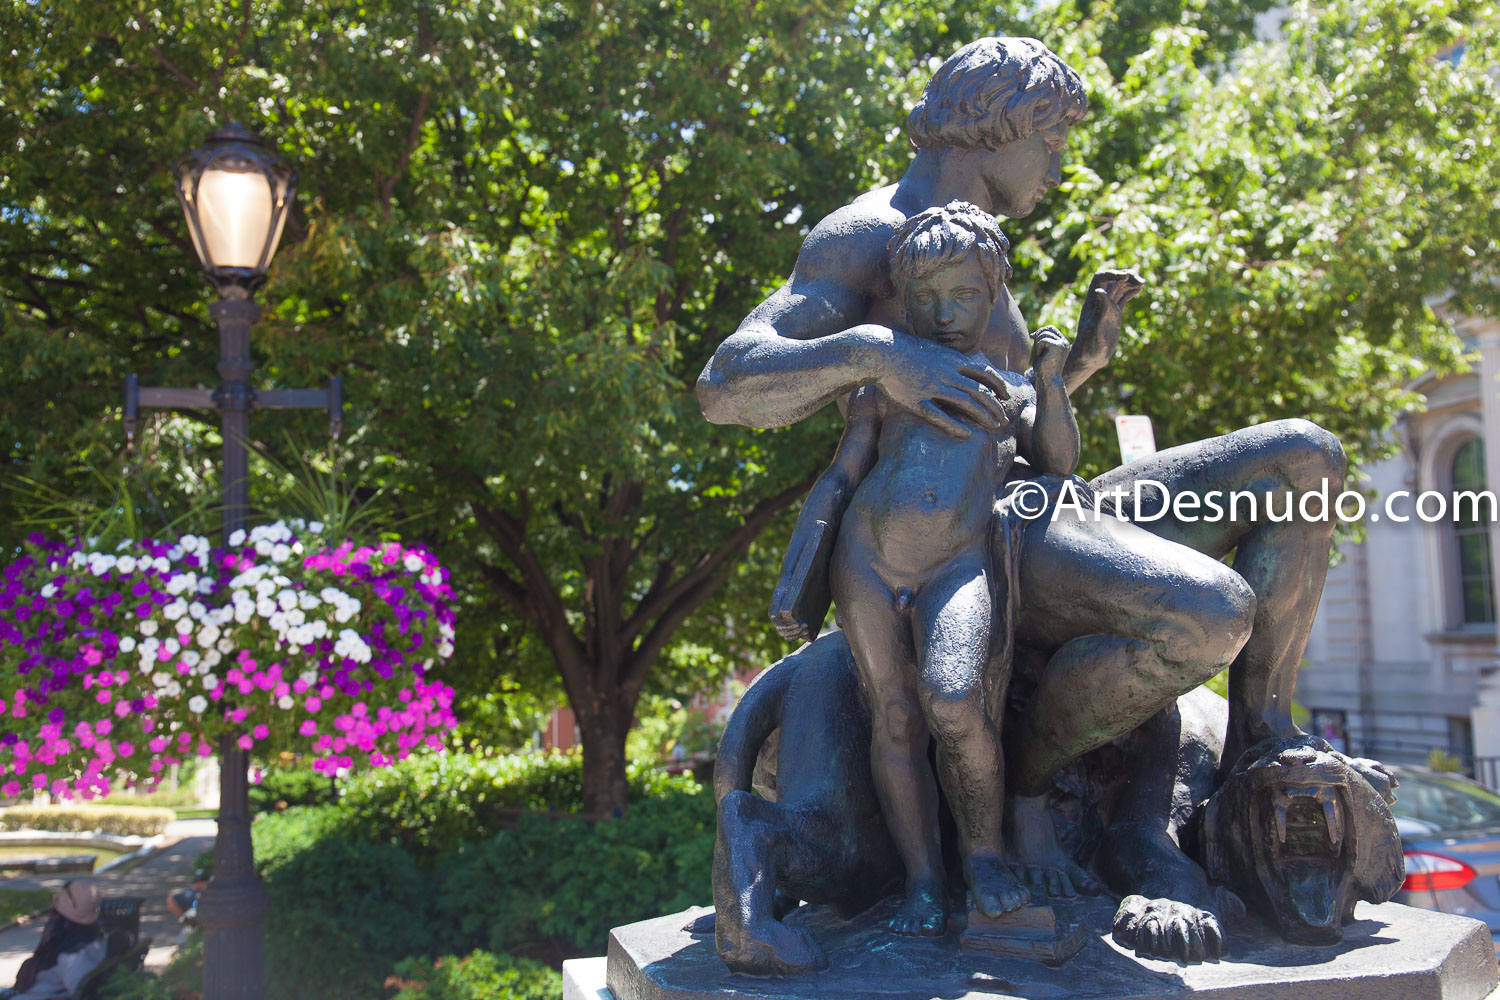 Naked male sculptures in Baltimore City, Maryland, United States of America. Photo by ArtDesnudo.com